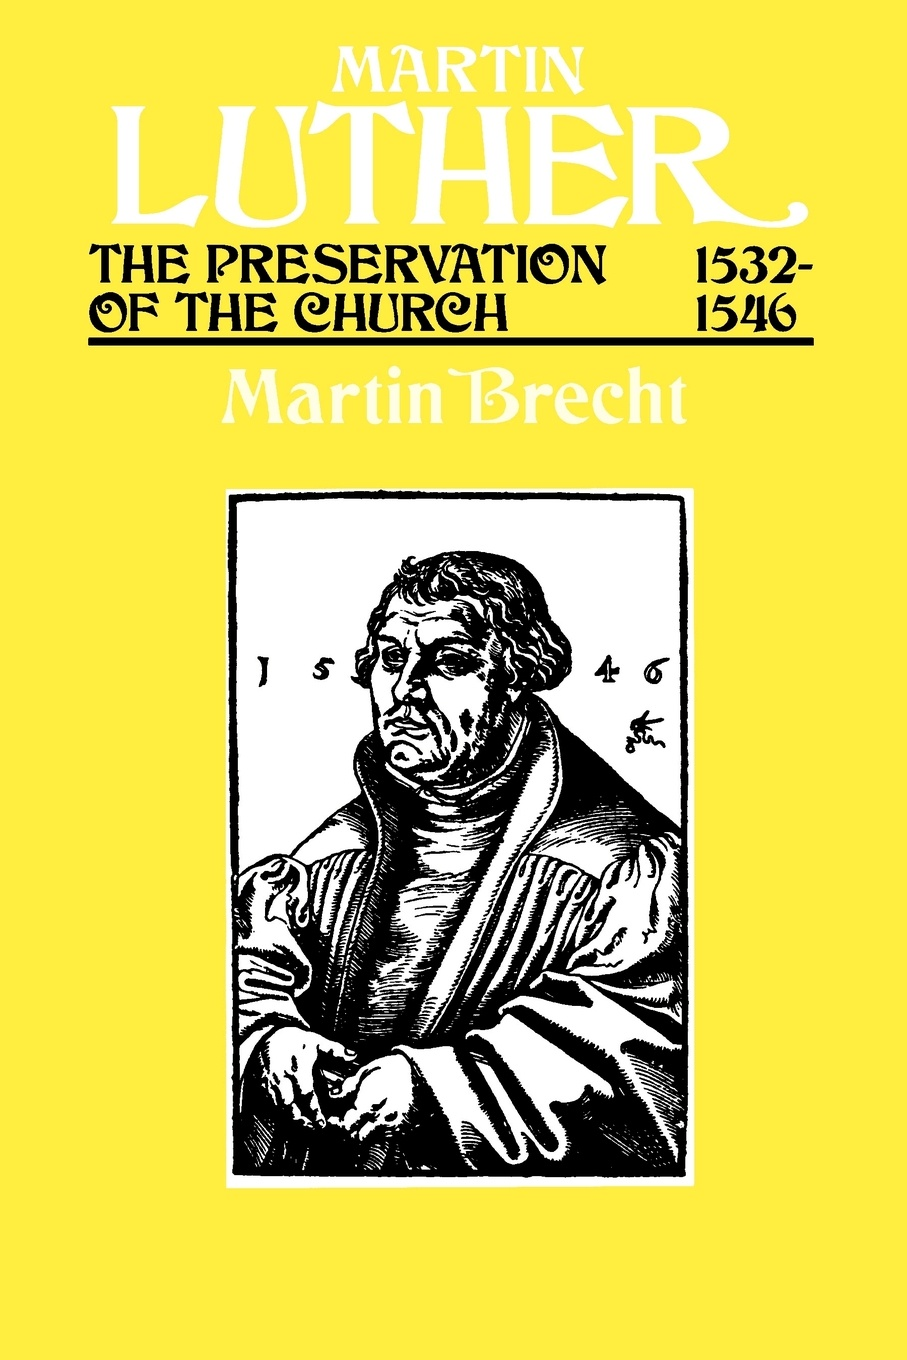 Martin Brecht, James L. Schaaf Martin Luther the Preservation of the Church Vol 3 1532-1546 martin luther john nicholas lenker luther on sin and the flood commentary on genesis vol ii